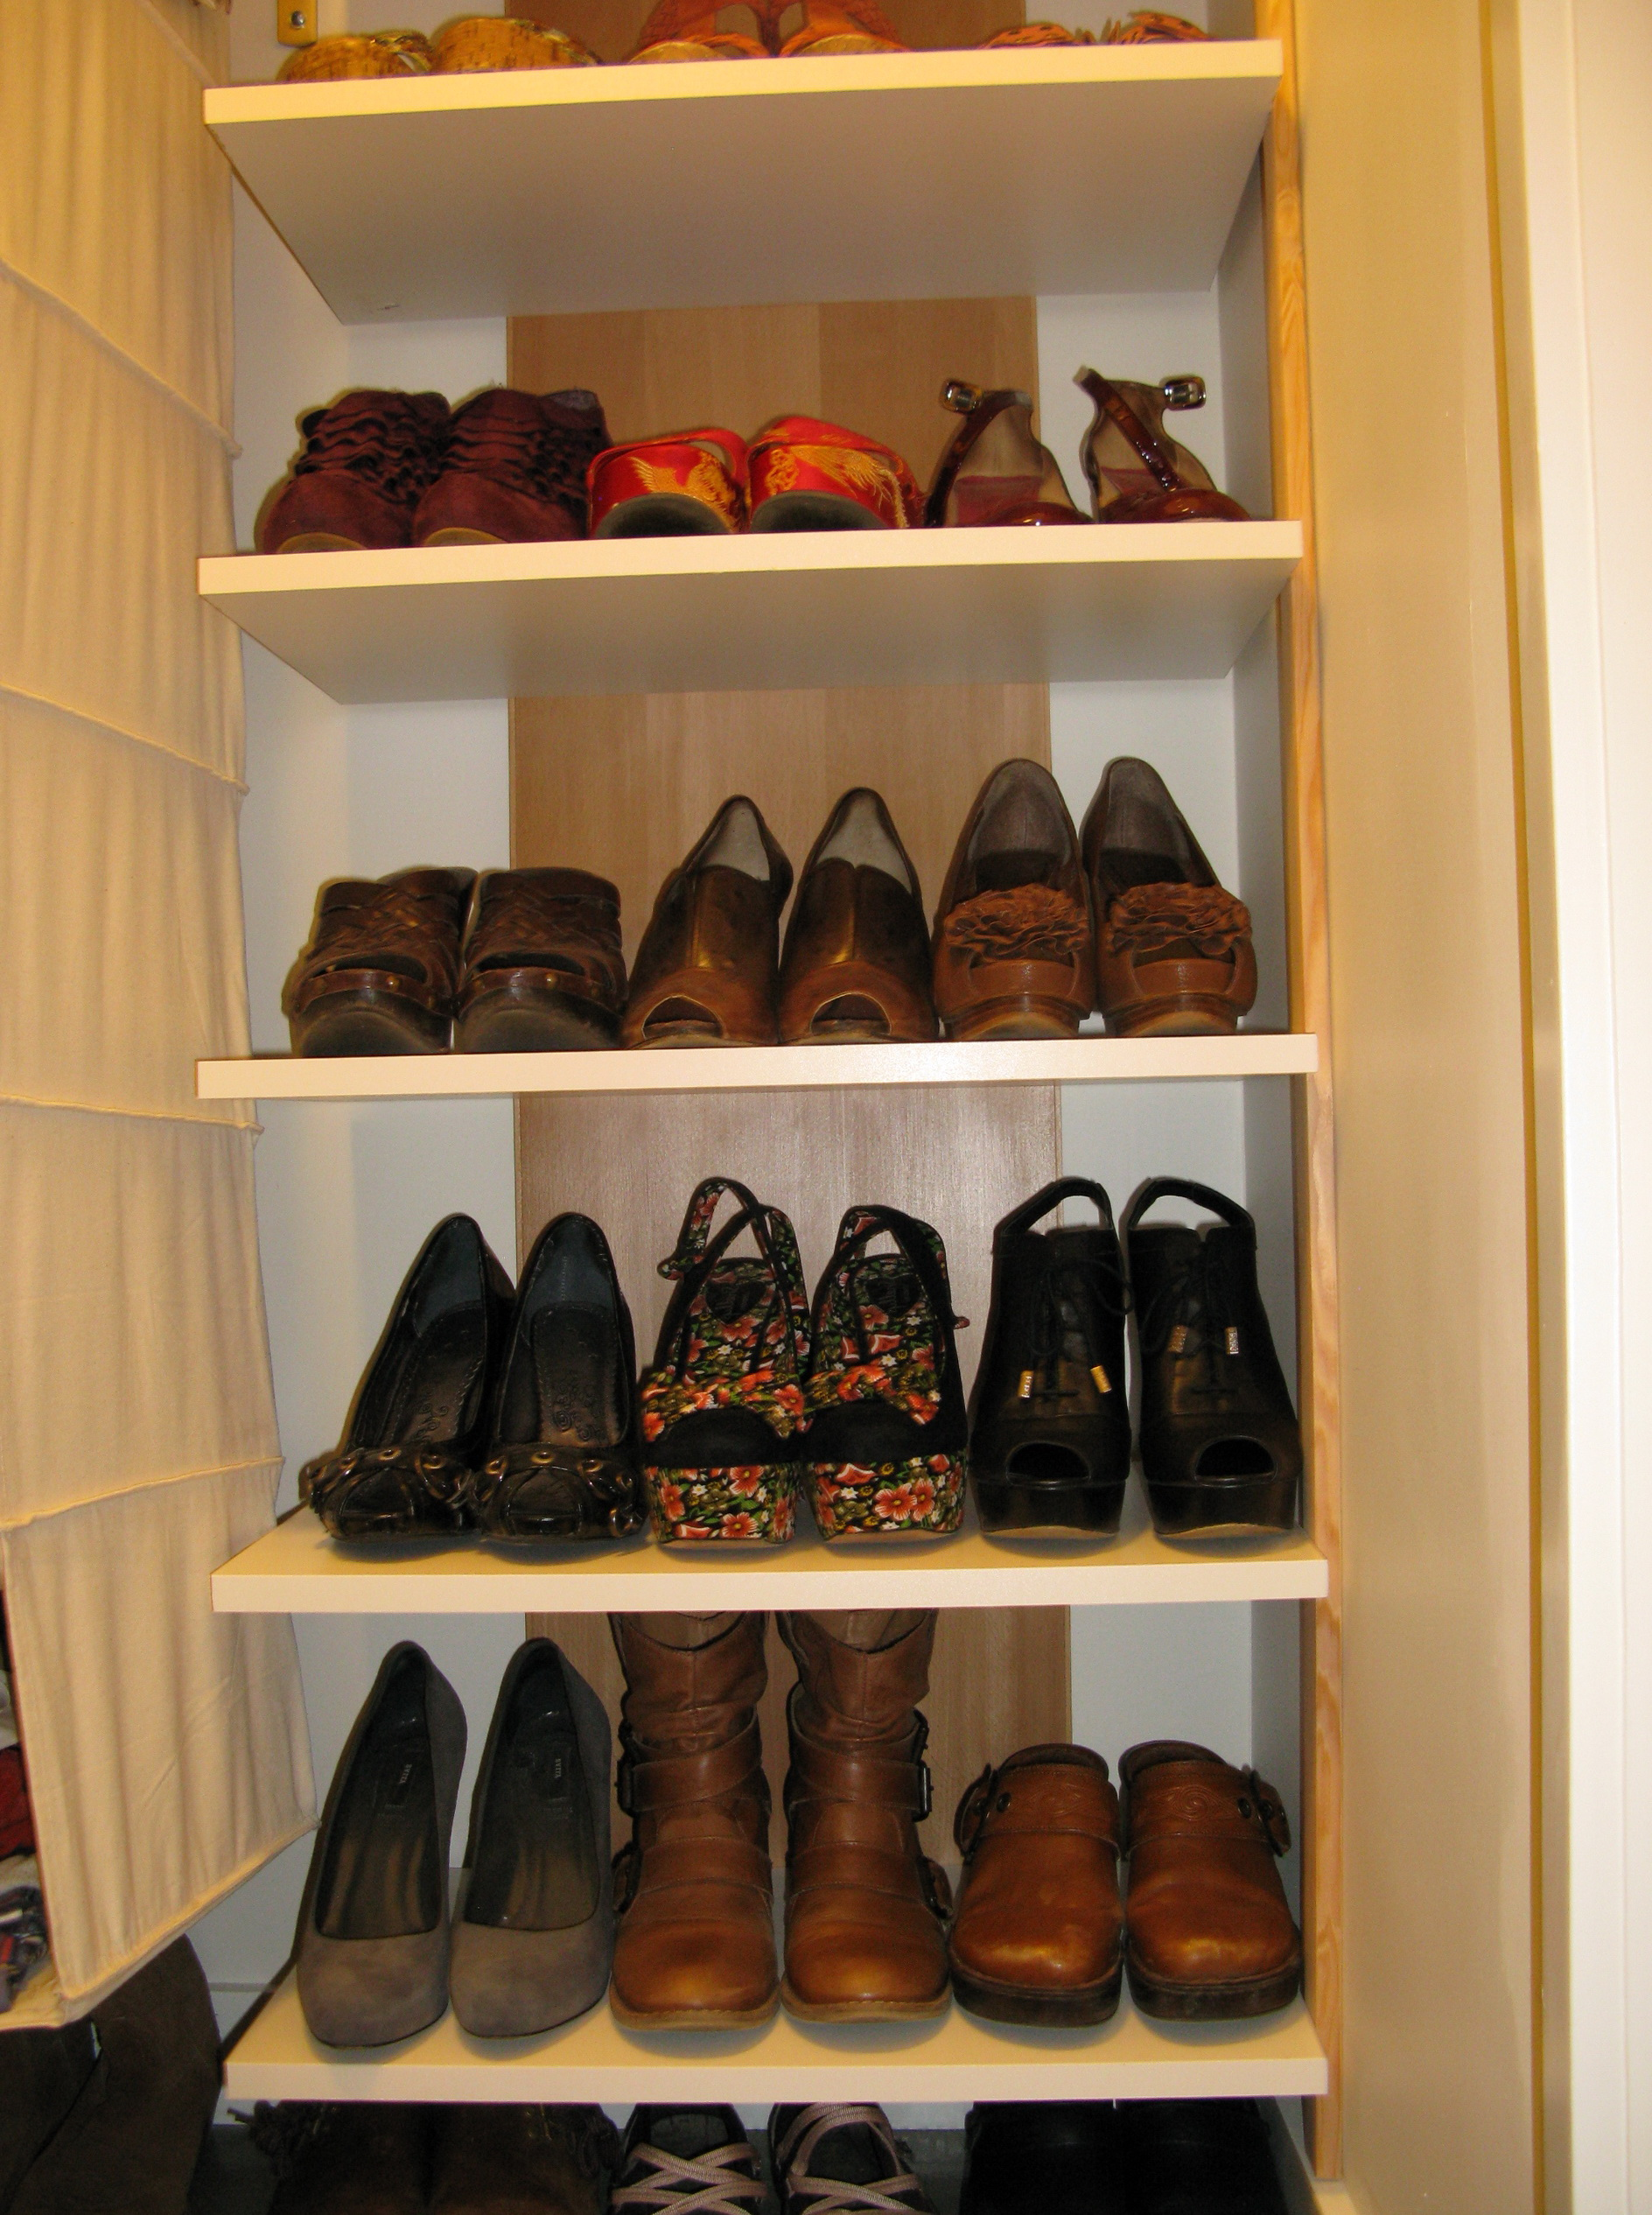 Small Shoe Racks For Closet Home Design Ideas